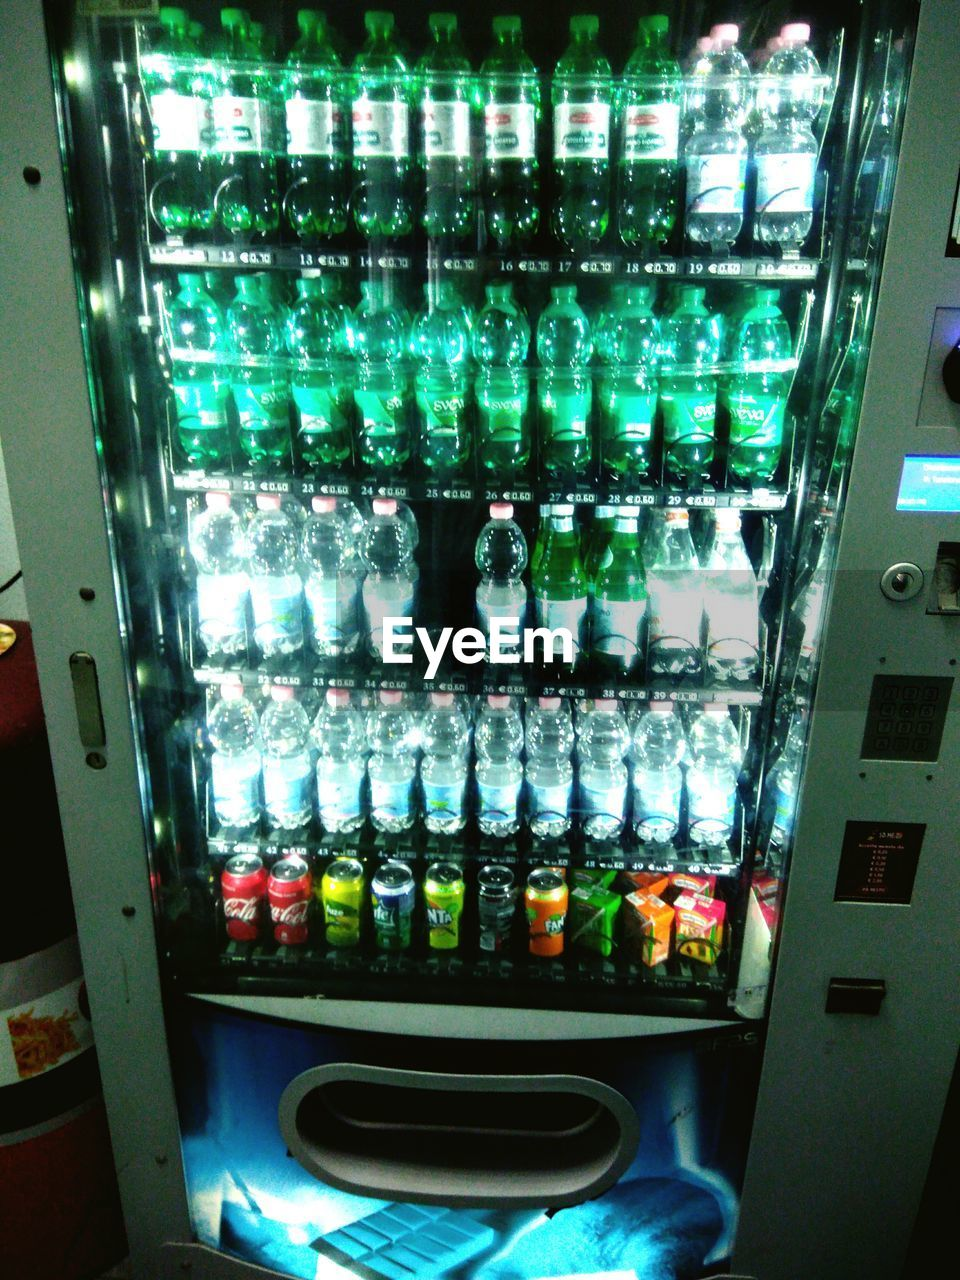 indoors, no people, illuminated, glass - material, close-up, in a row, container, machinery, technology, bottle, group, large group of objects, choice, glowing, control, multi colored, side by side, metal, business, food and drink, vending machine